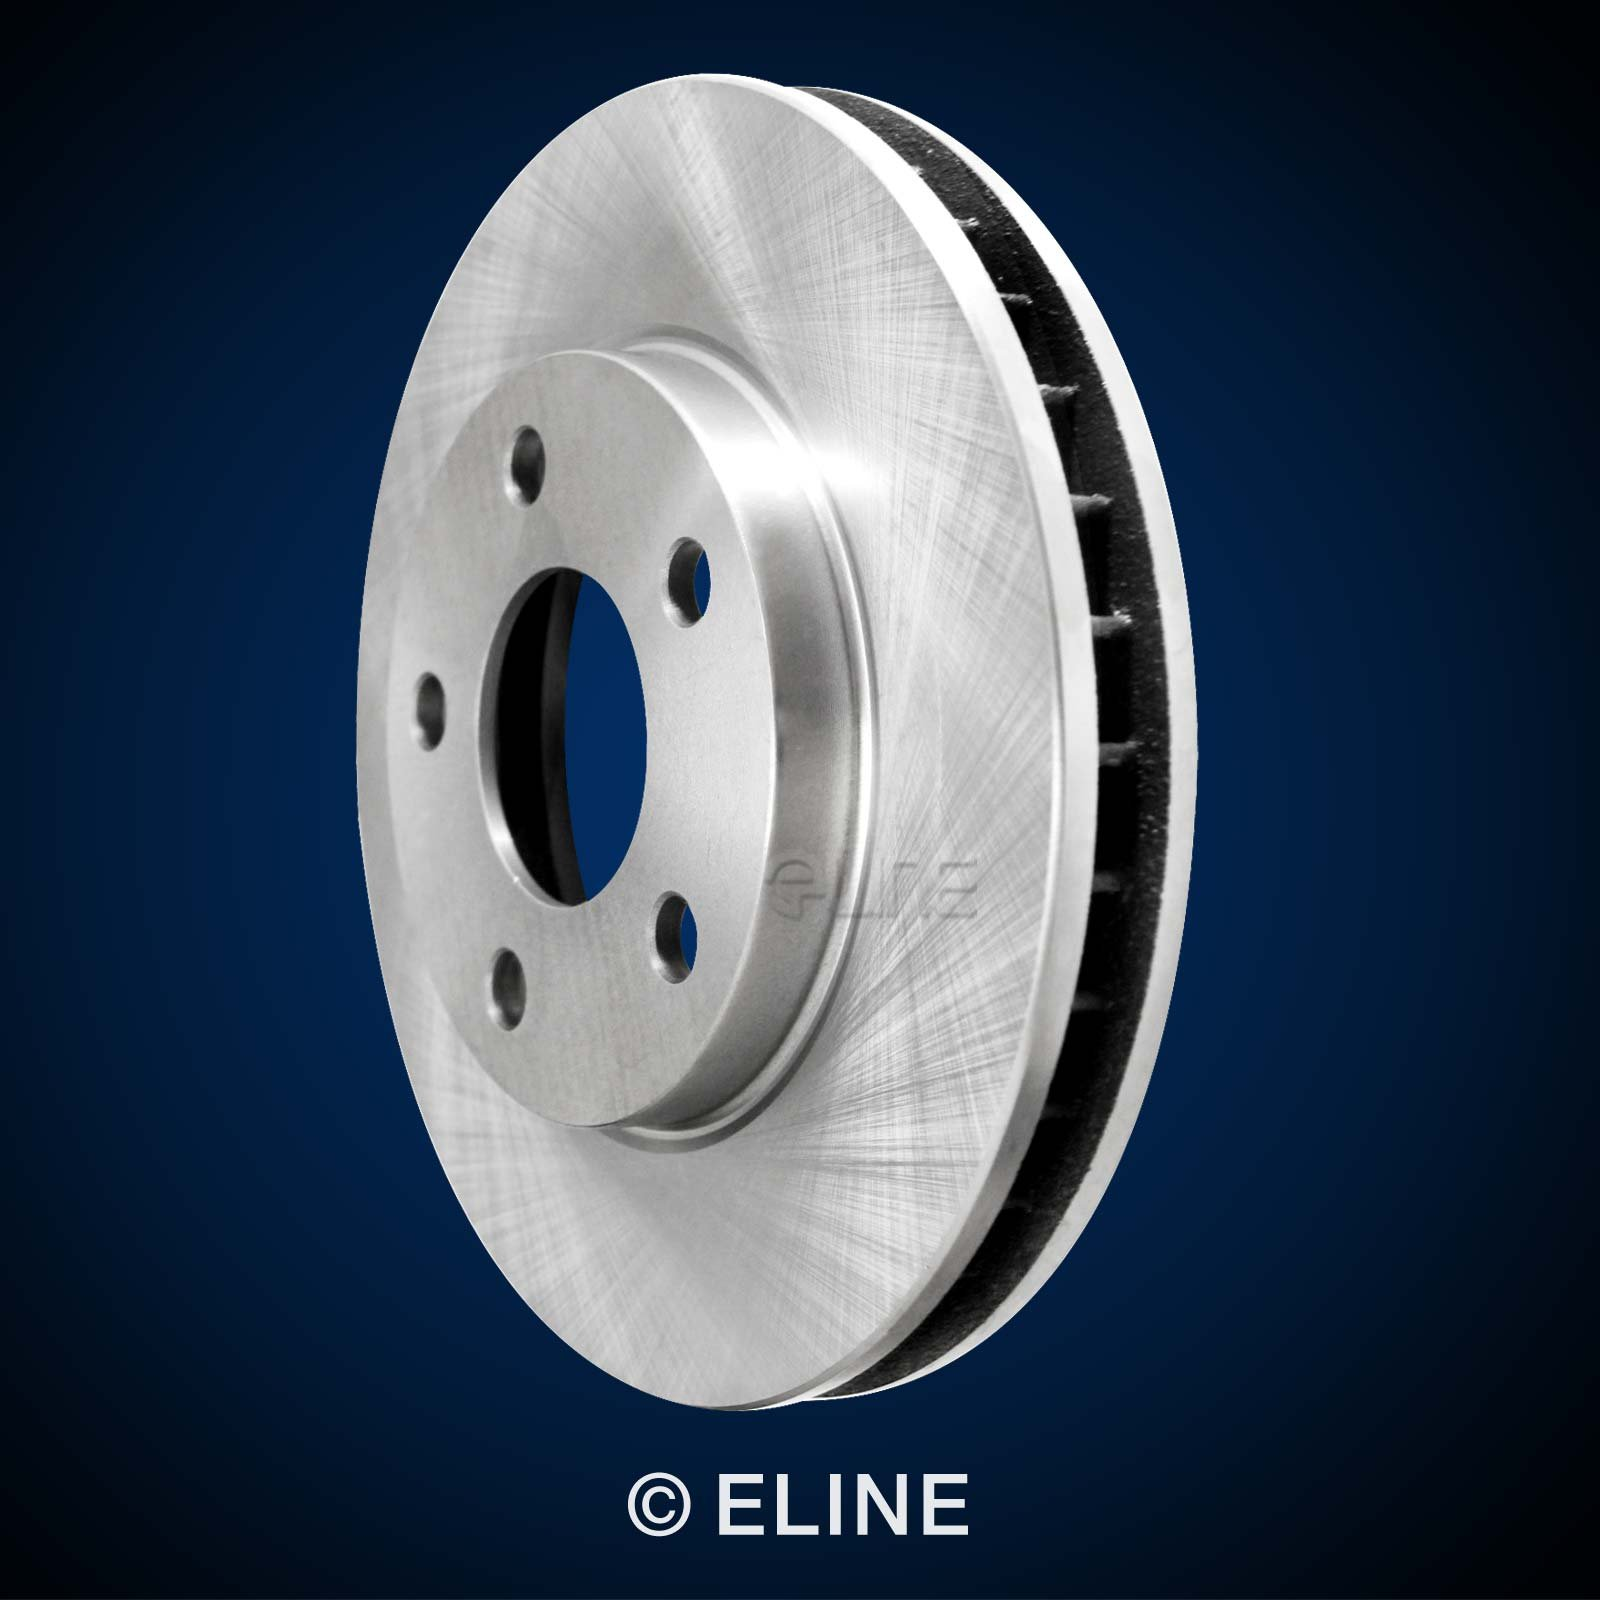 R1 Concepts KEOE11428 Eline Series Replacement Rotors And Ceramic Pads Kit - Front by R1 Concepts (Image #7)